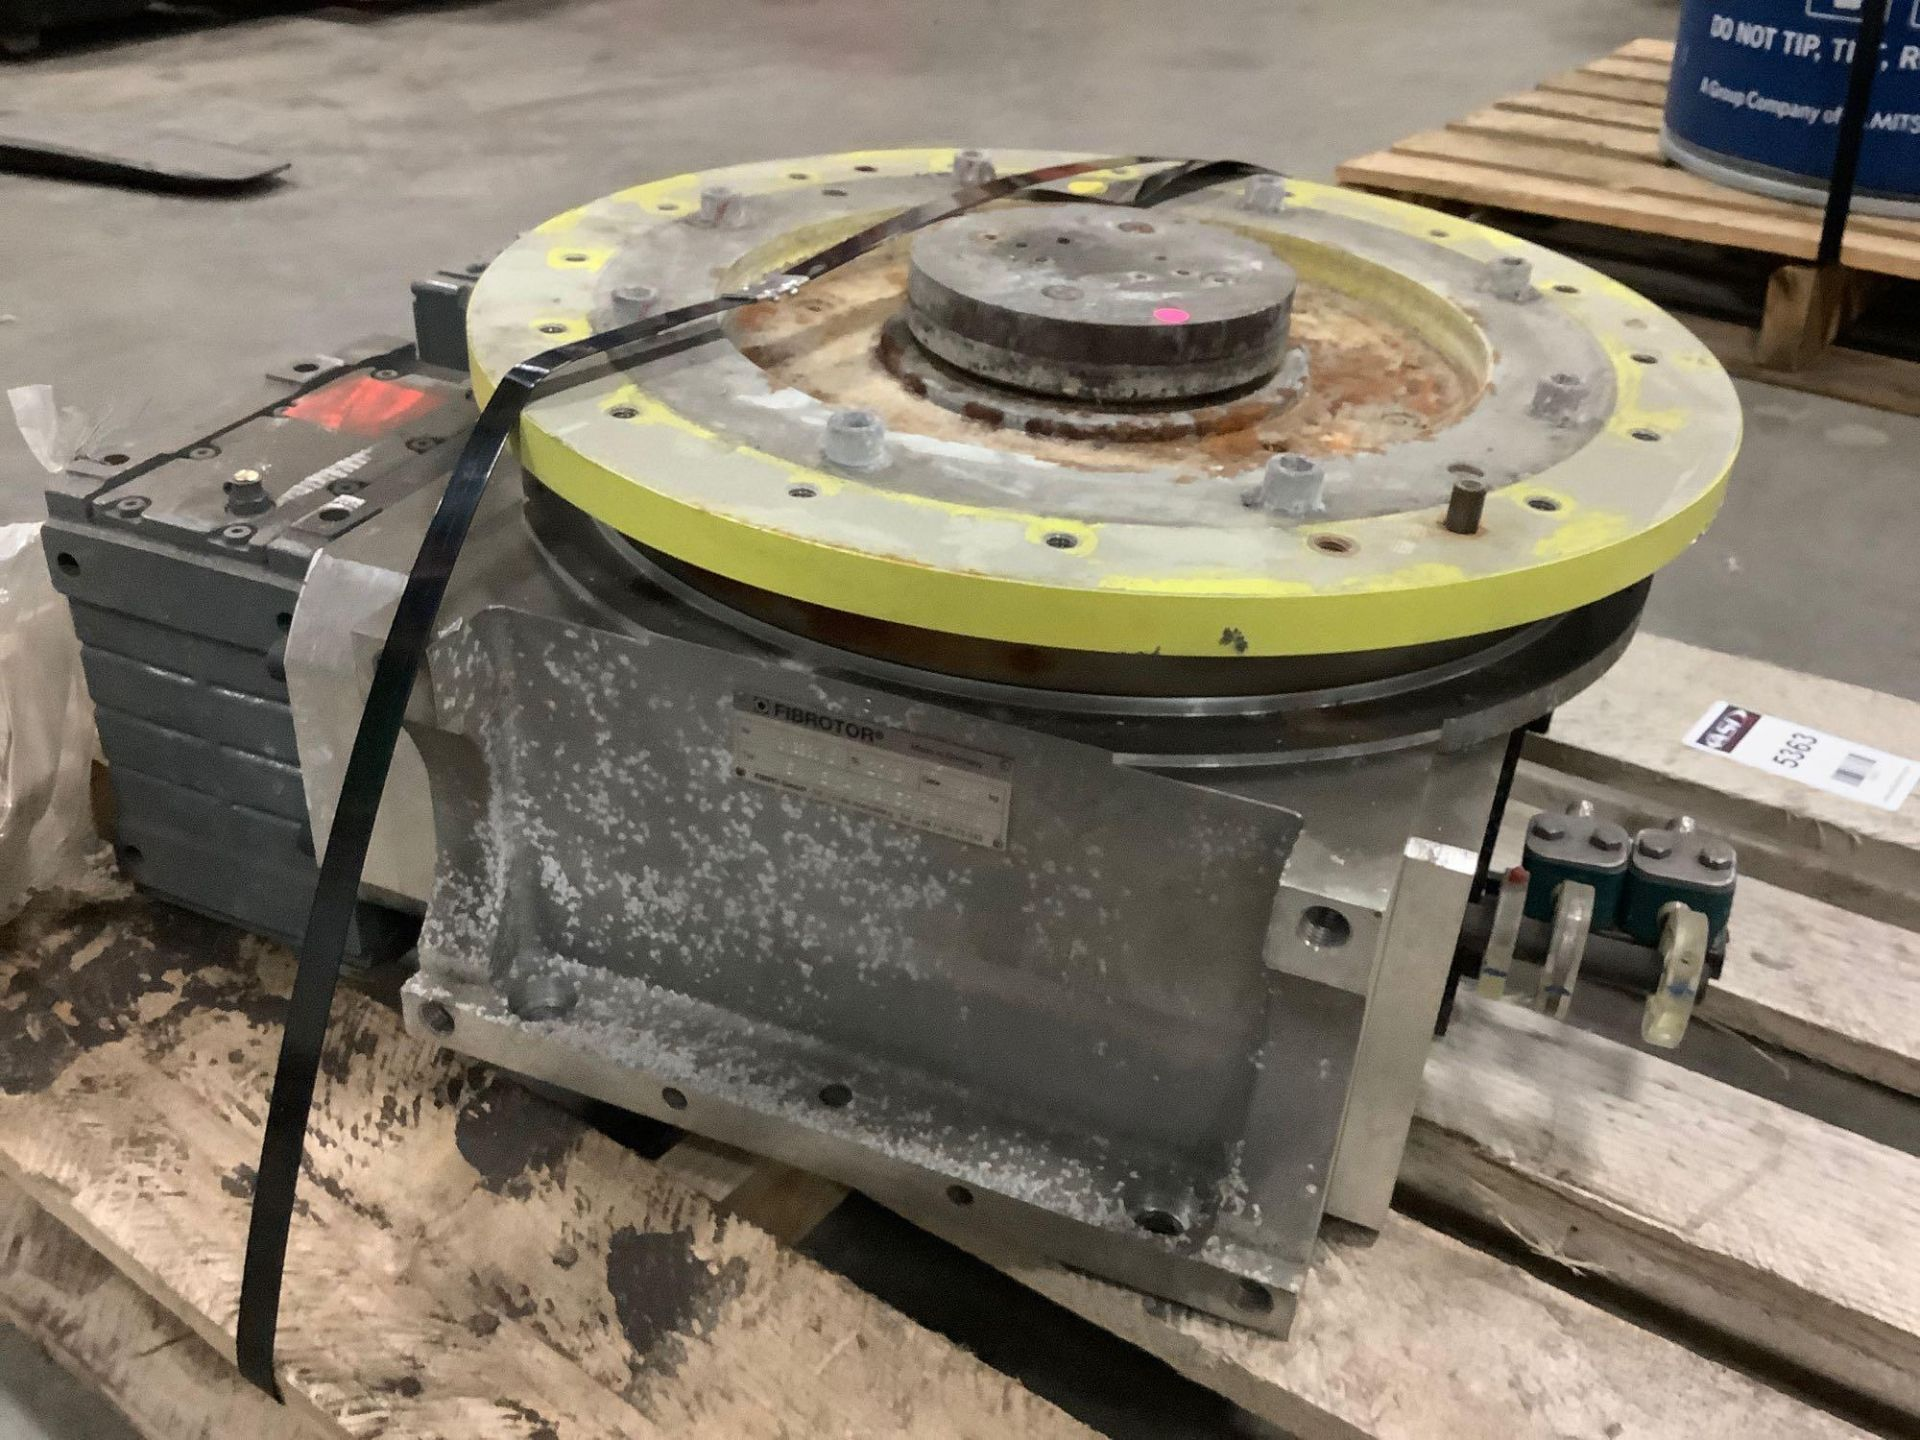 2013 LENZE FIBROTOR 150410-9-152-03-0-0-3 ROTARY TABLE MOTOR WITH MANUAL ATTACHED ( 5363 ) - Image 6 of 8